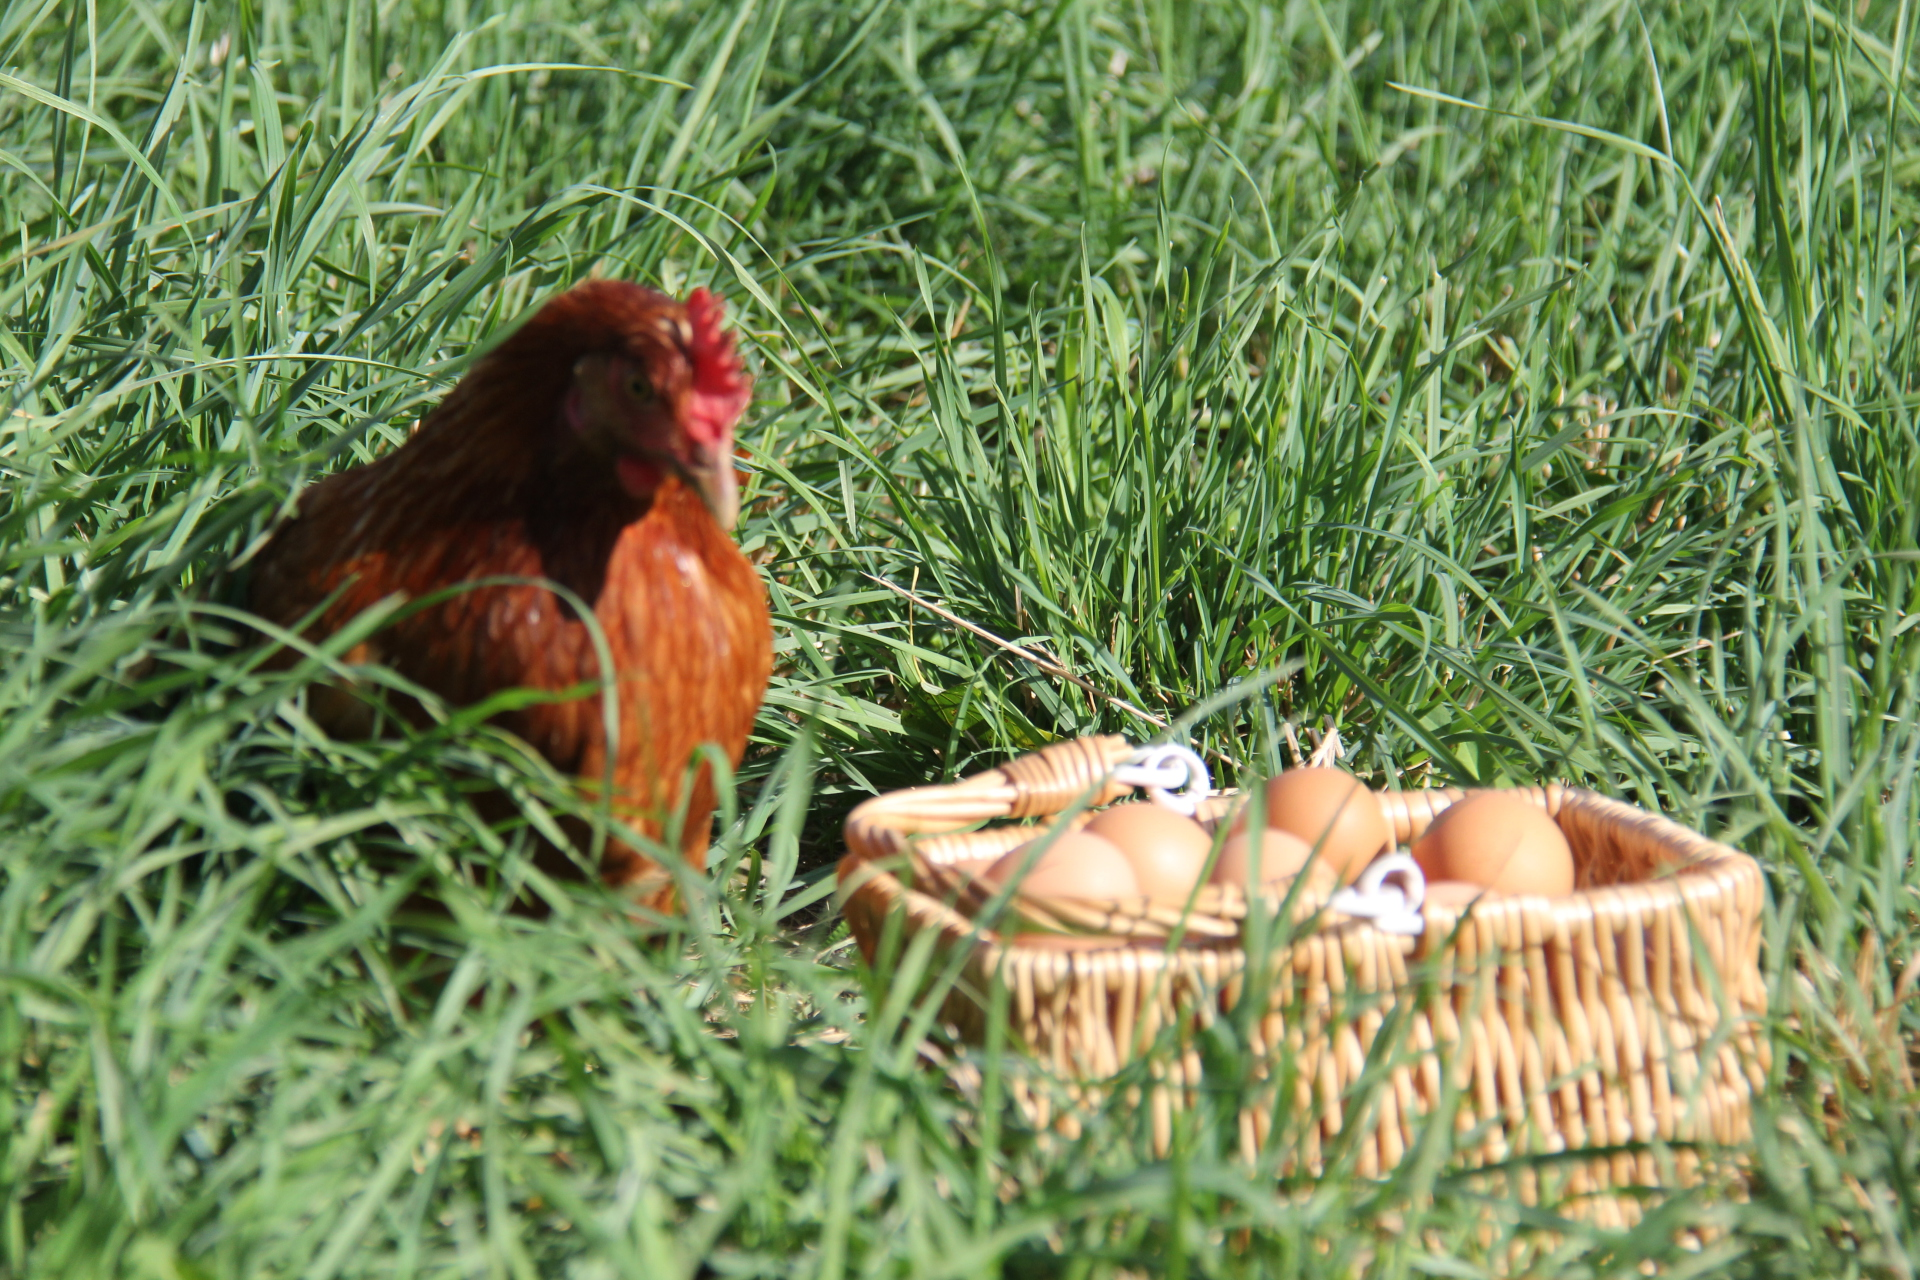 God's Glory Farm, Purcellville, VA, pasture raised non-GMO eggs